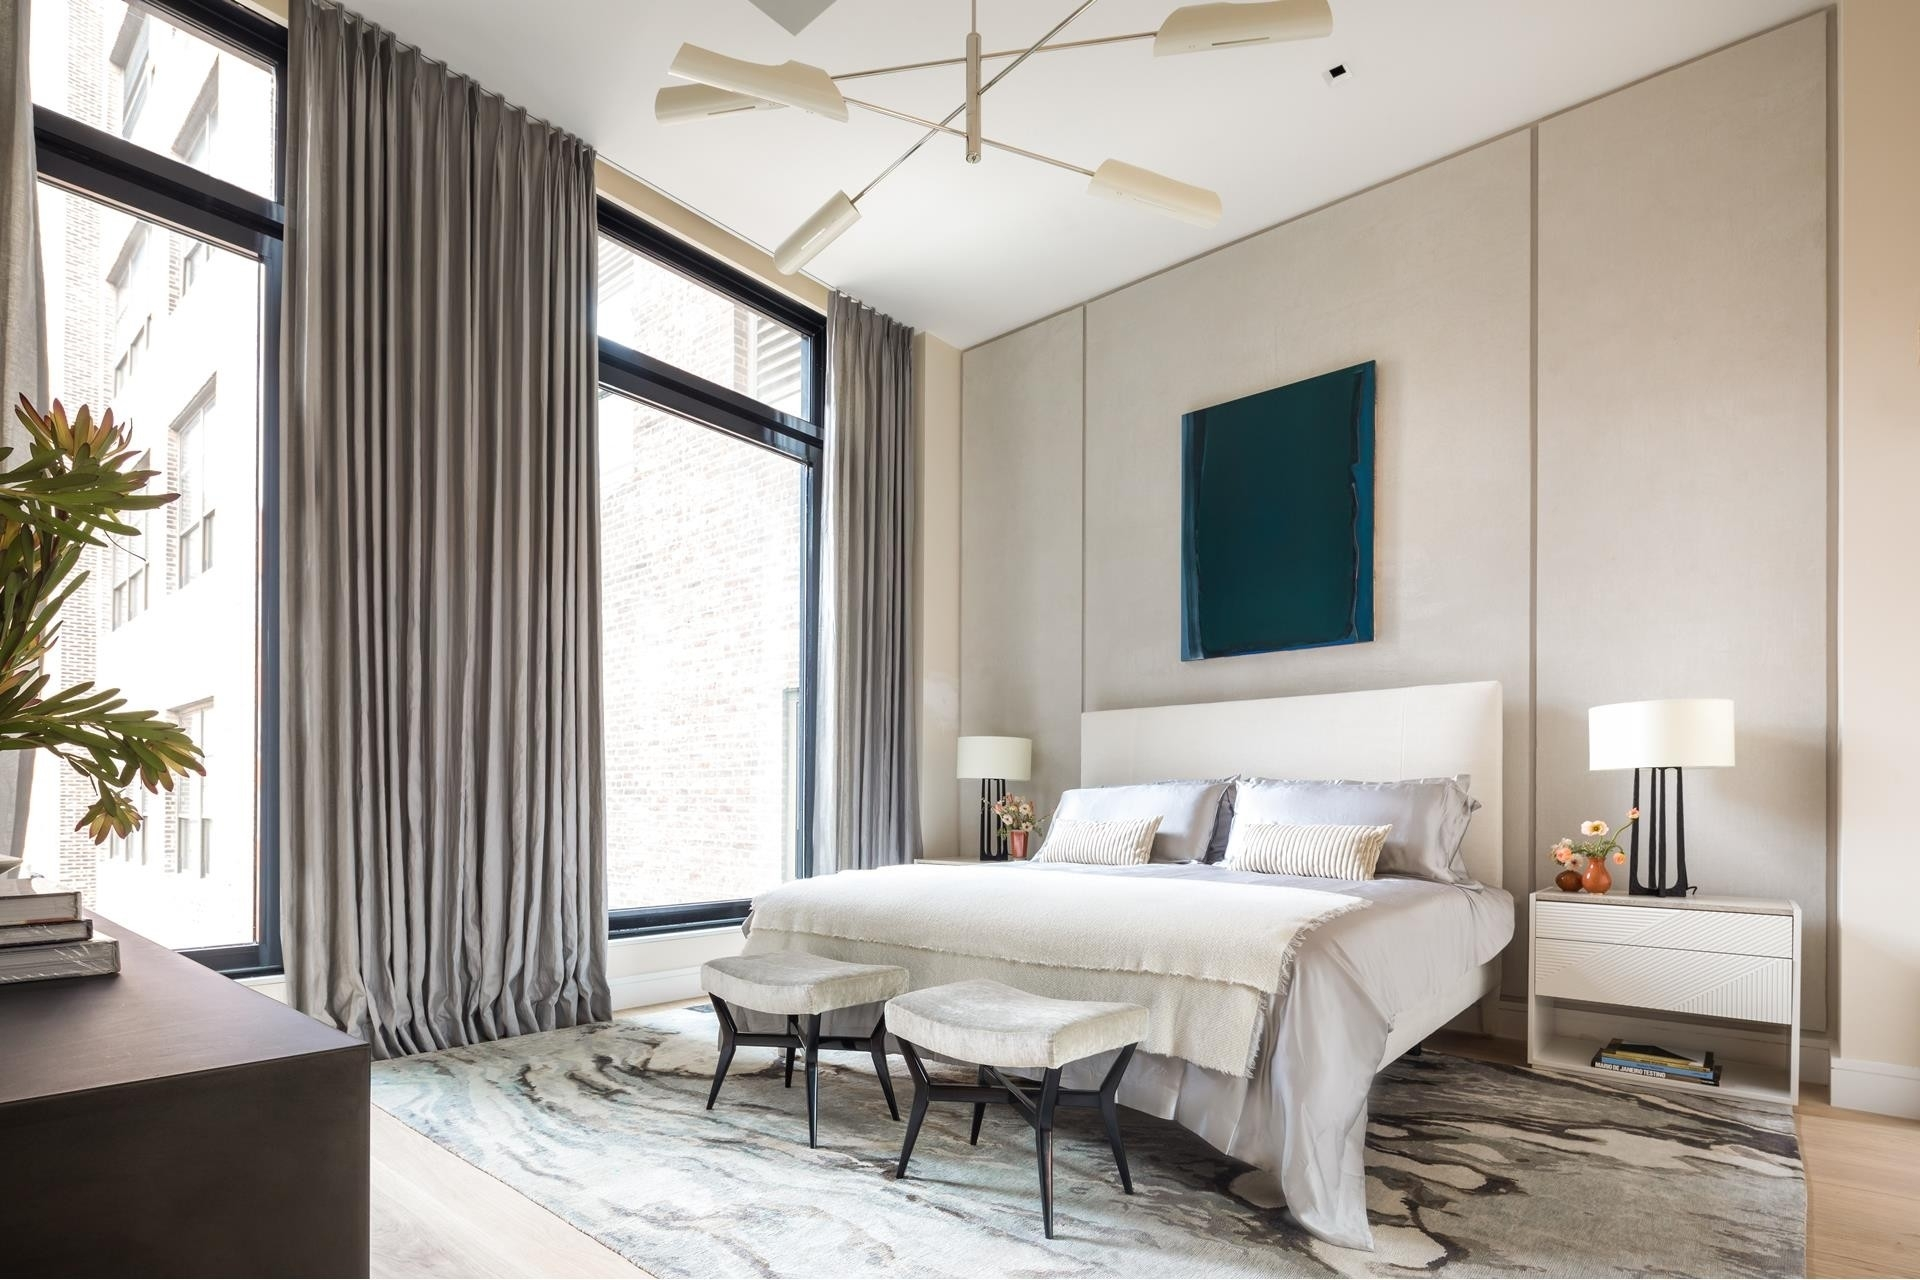 5. Condominiums for Sale at 111 Leroy St, 4 West Village, New York, NY 10014